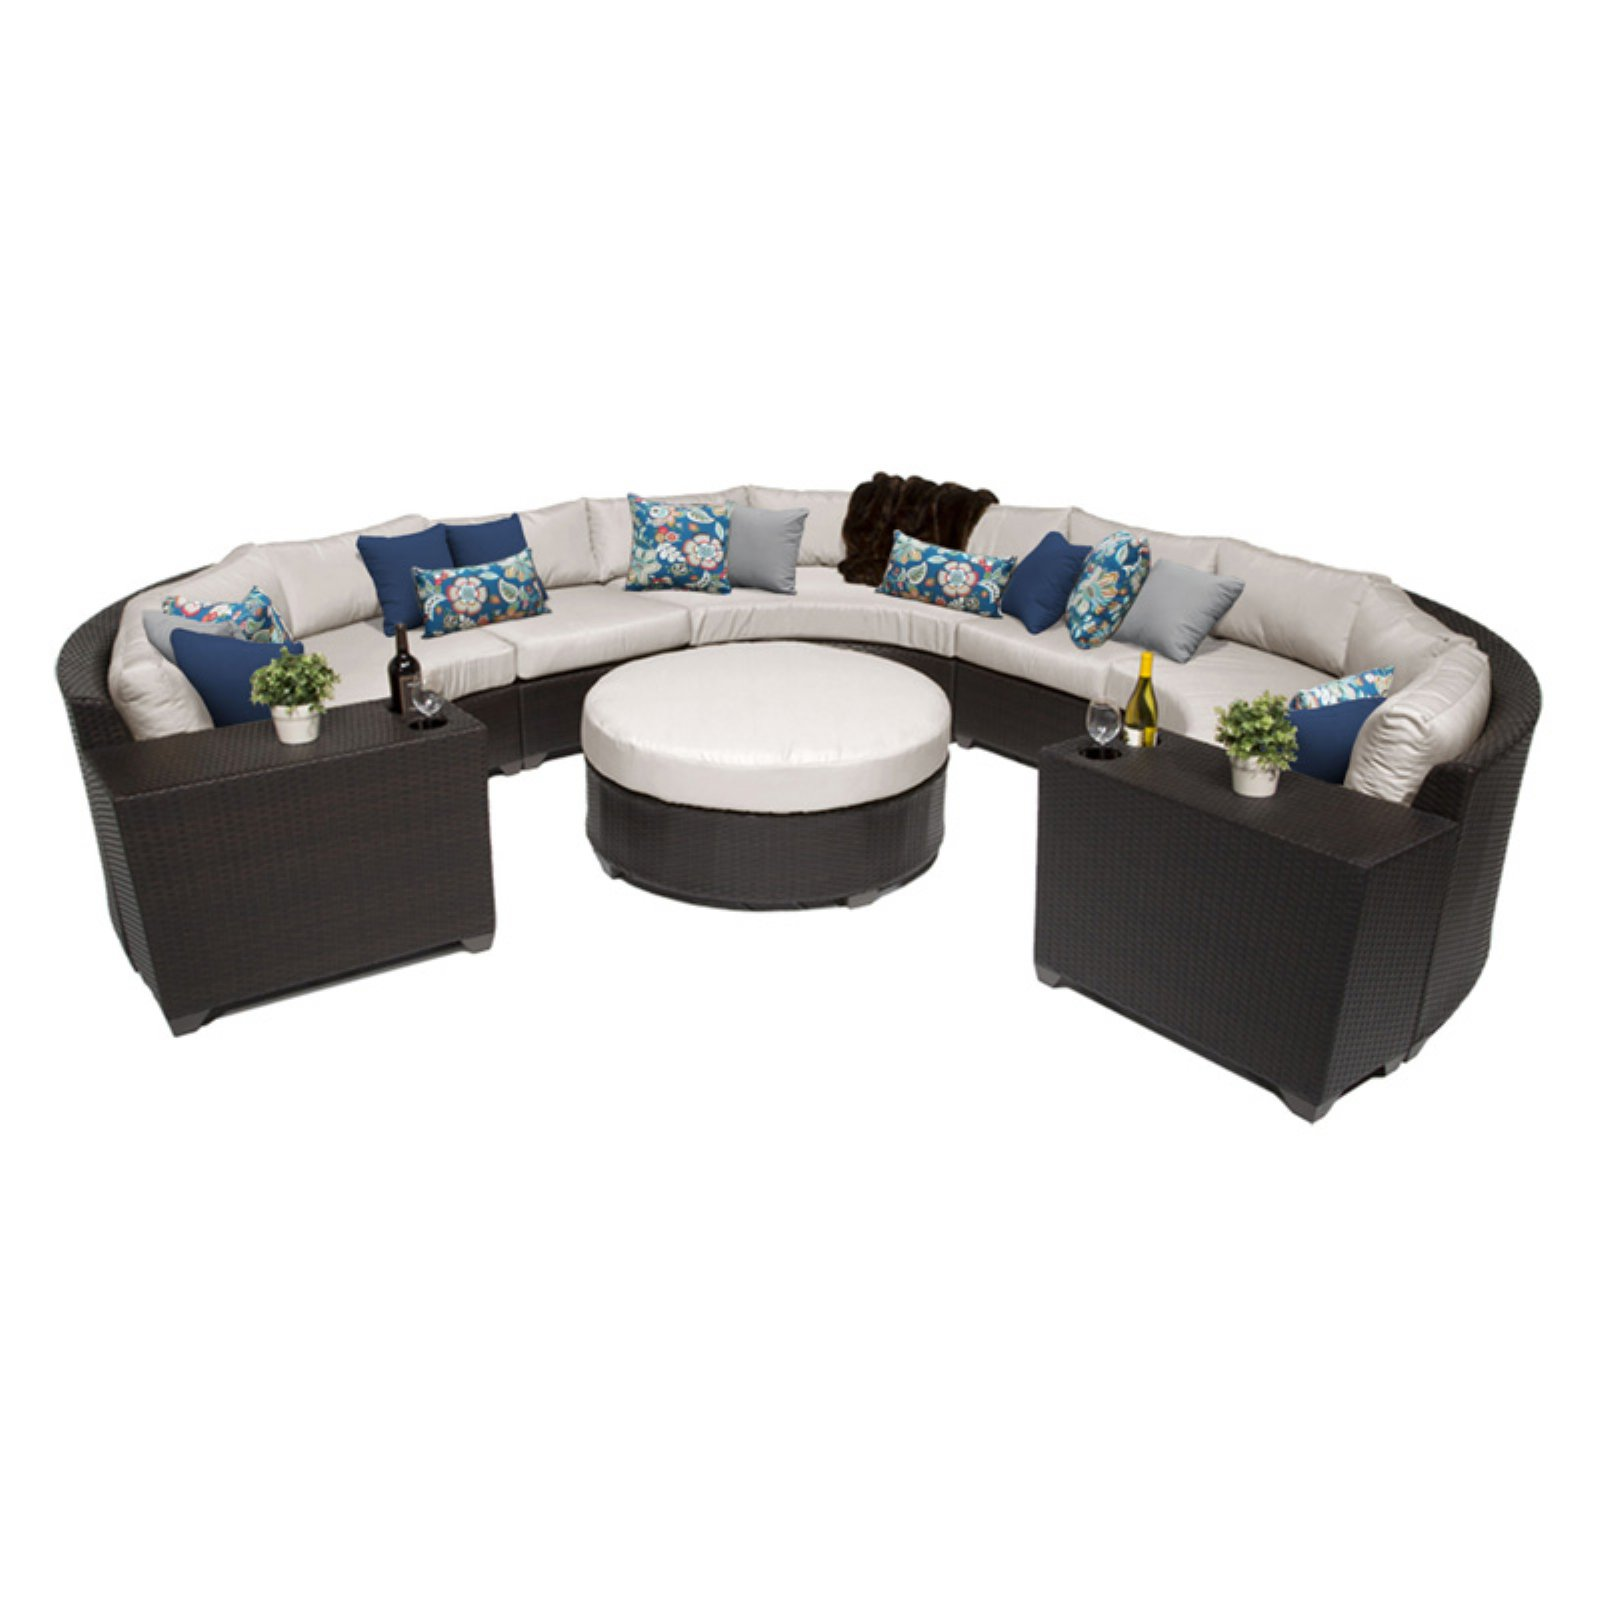 TK Classics Barbados Wicker 8 Piece Patio Conversation Set with Cup Table and 2 Sets of Cushion Covers